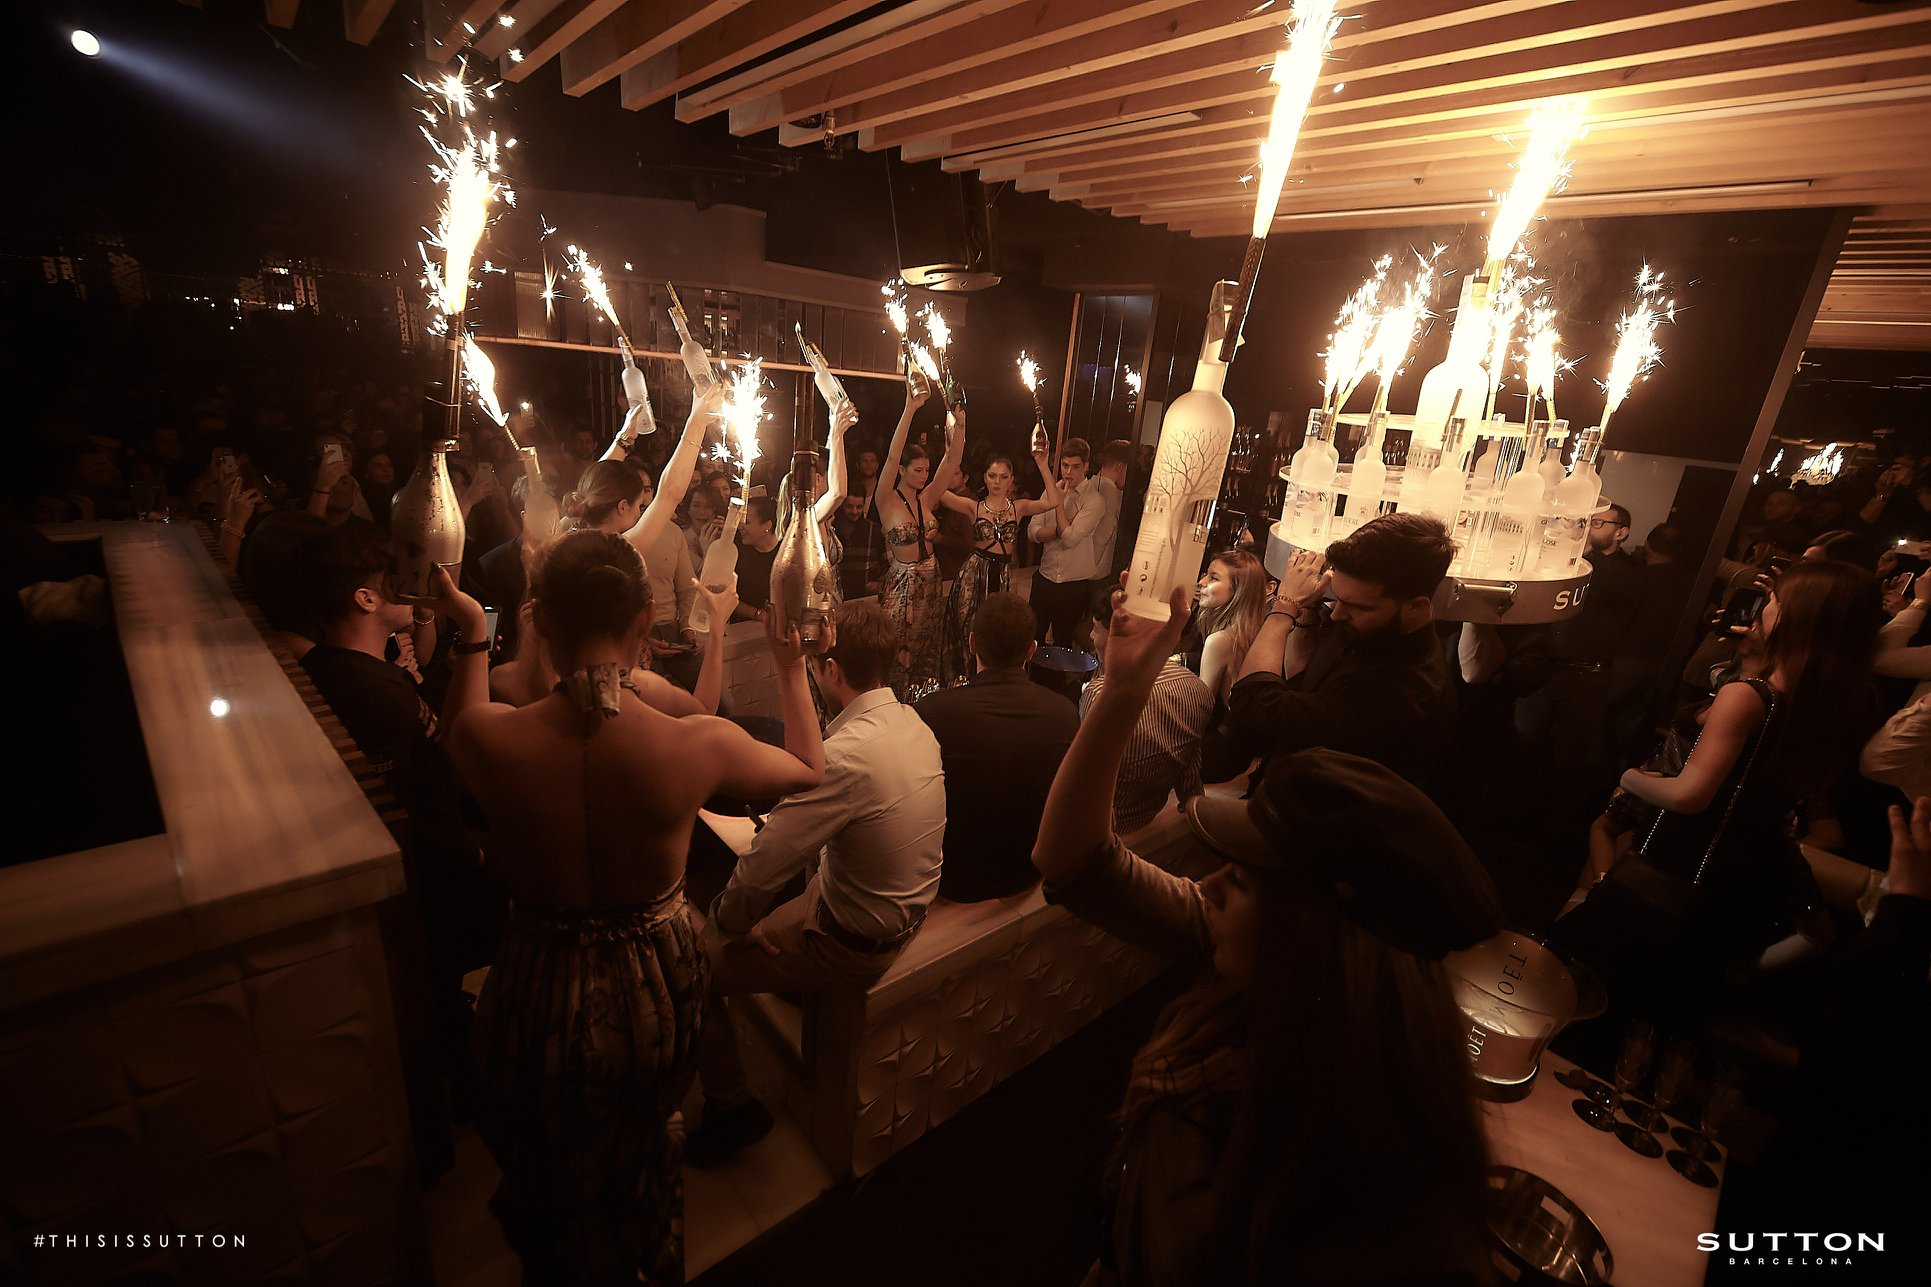 6433f62d273f The Sutton Club Dress Code for Men and Women - Nightlife Barcelona